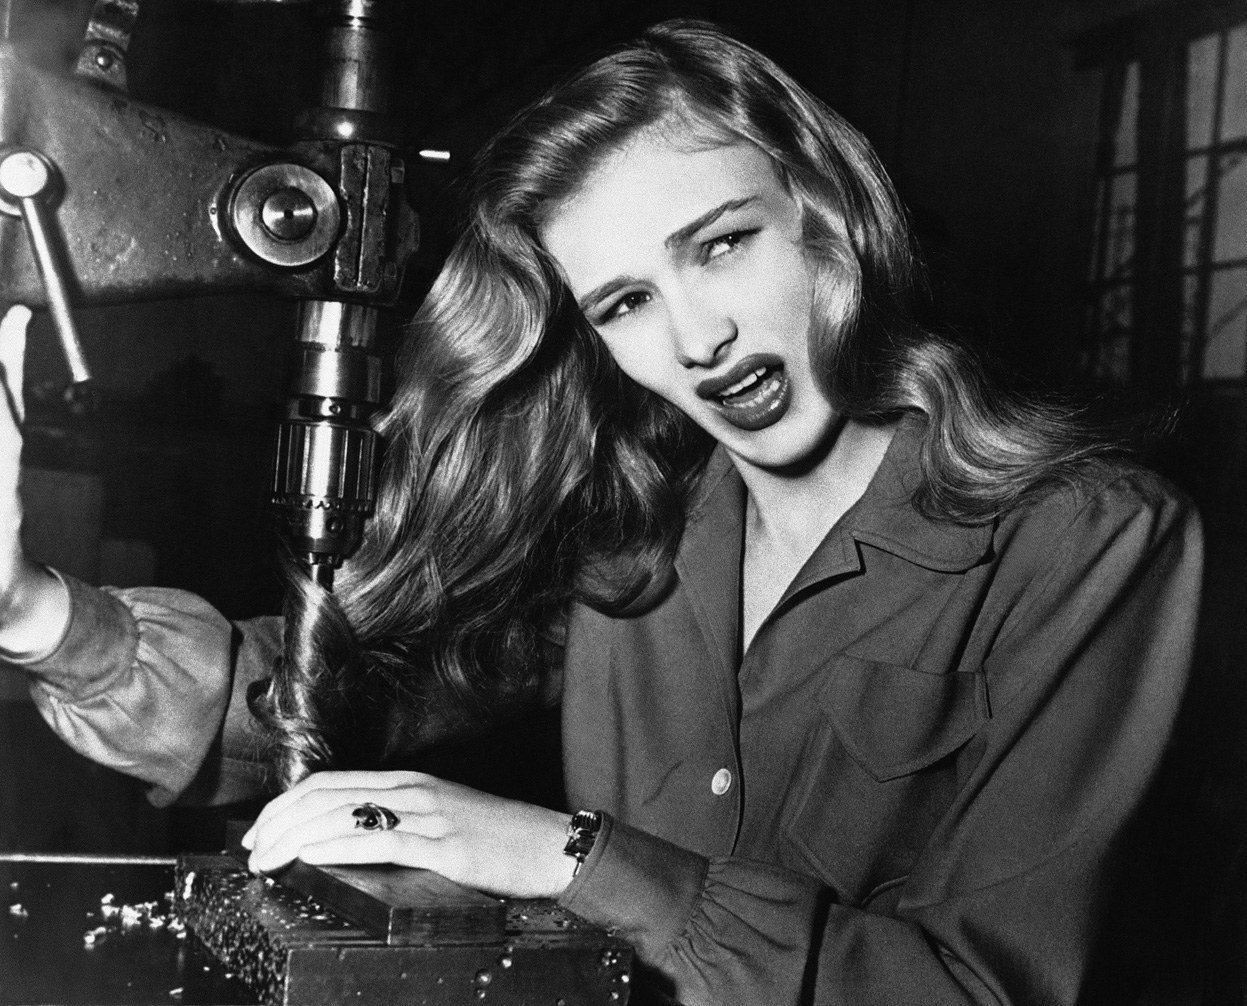 Discussion on this topic: Buff Cobb, veronica-lake/